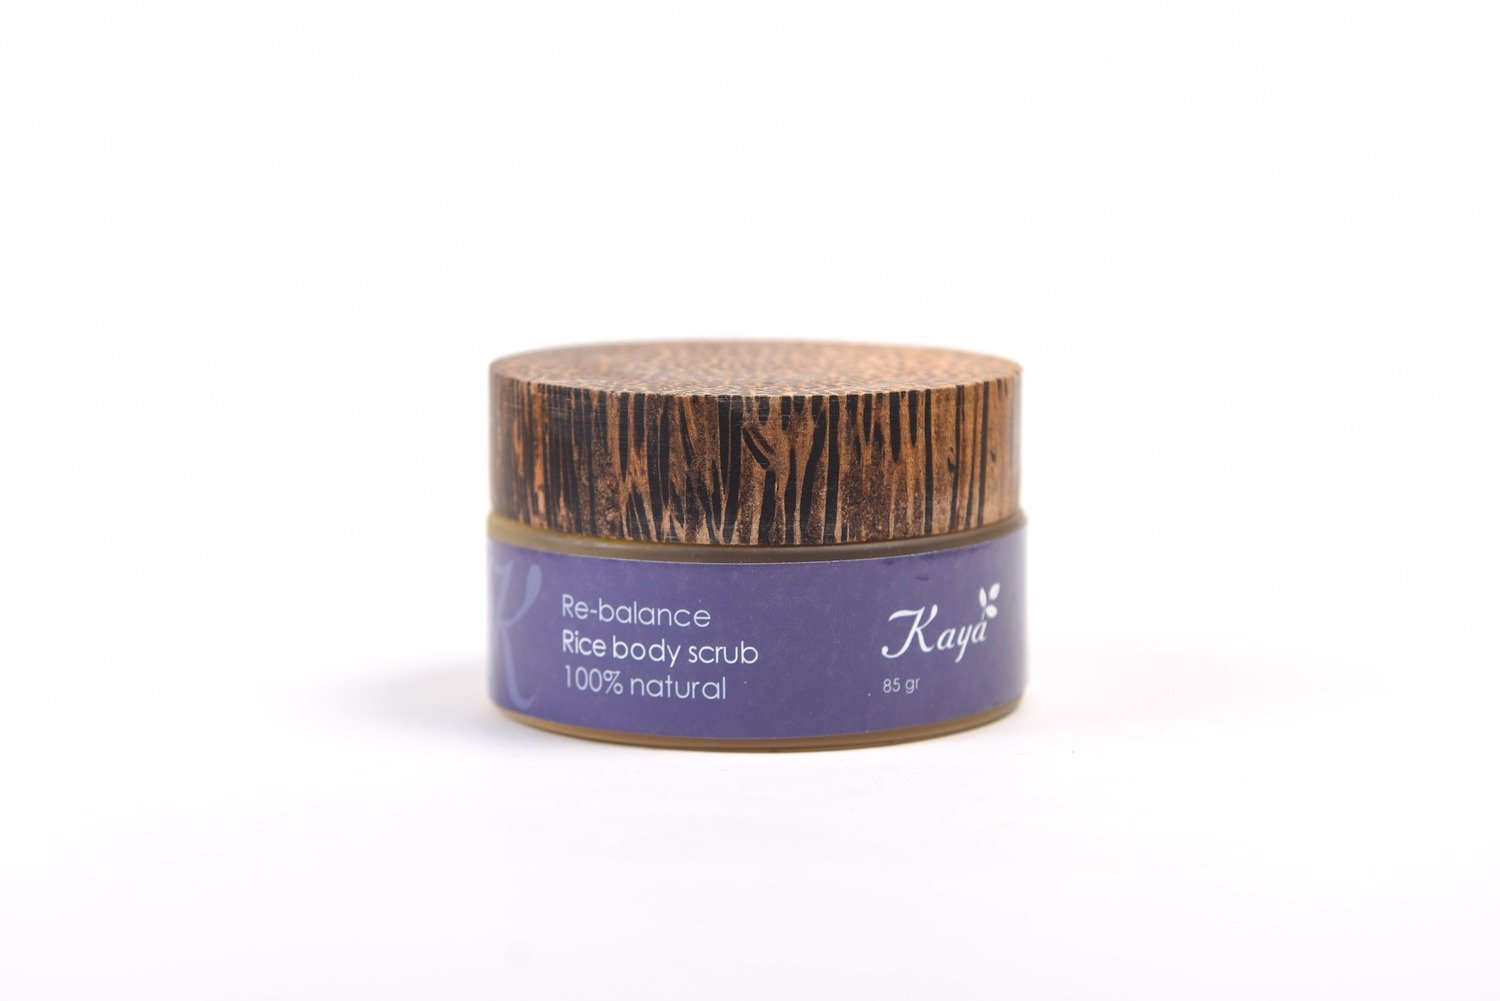 Re-Balance Body Scrub, 100% Natural